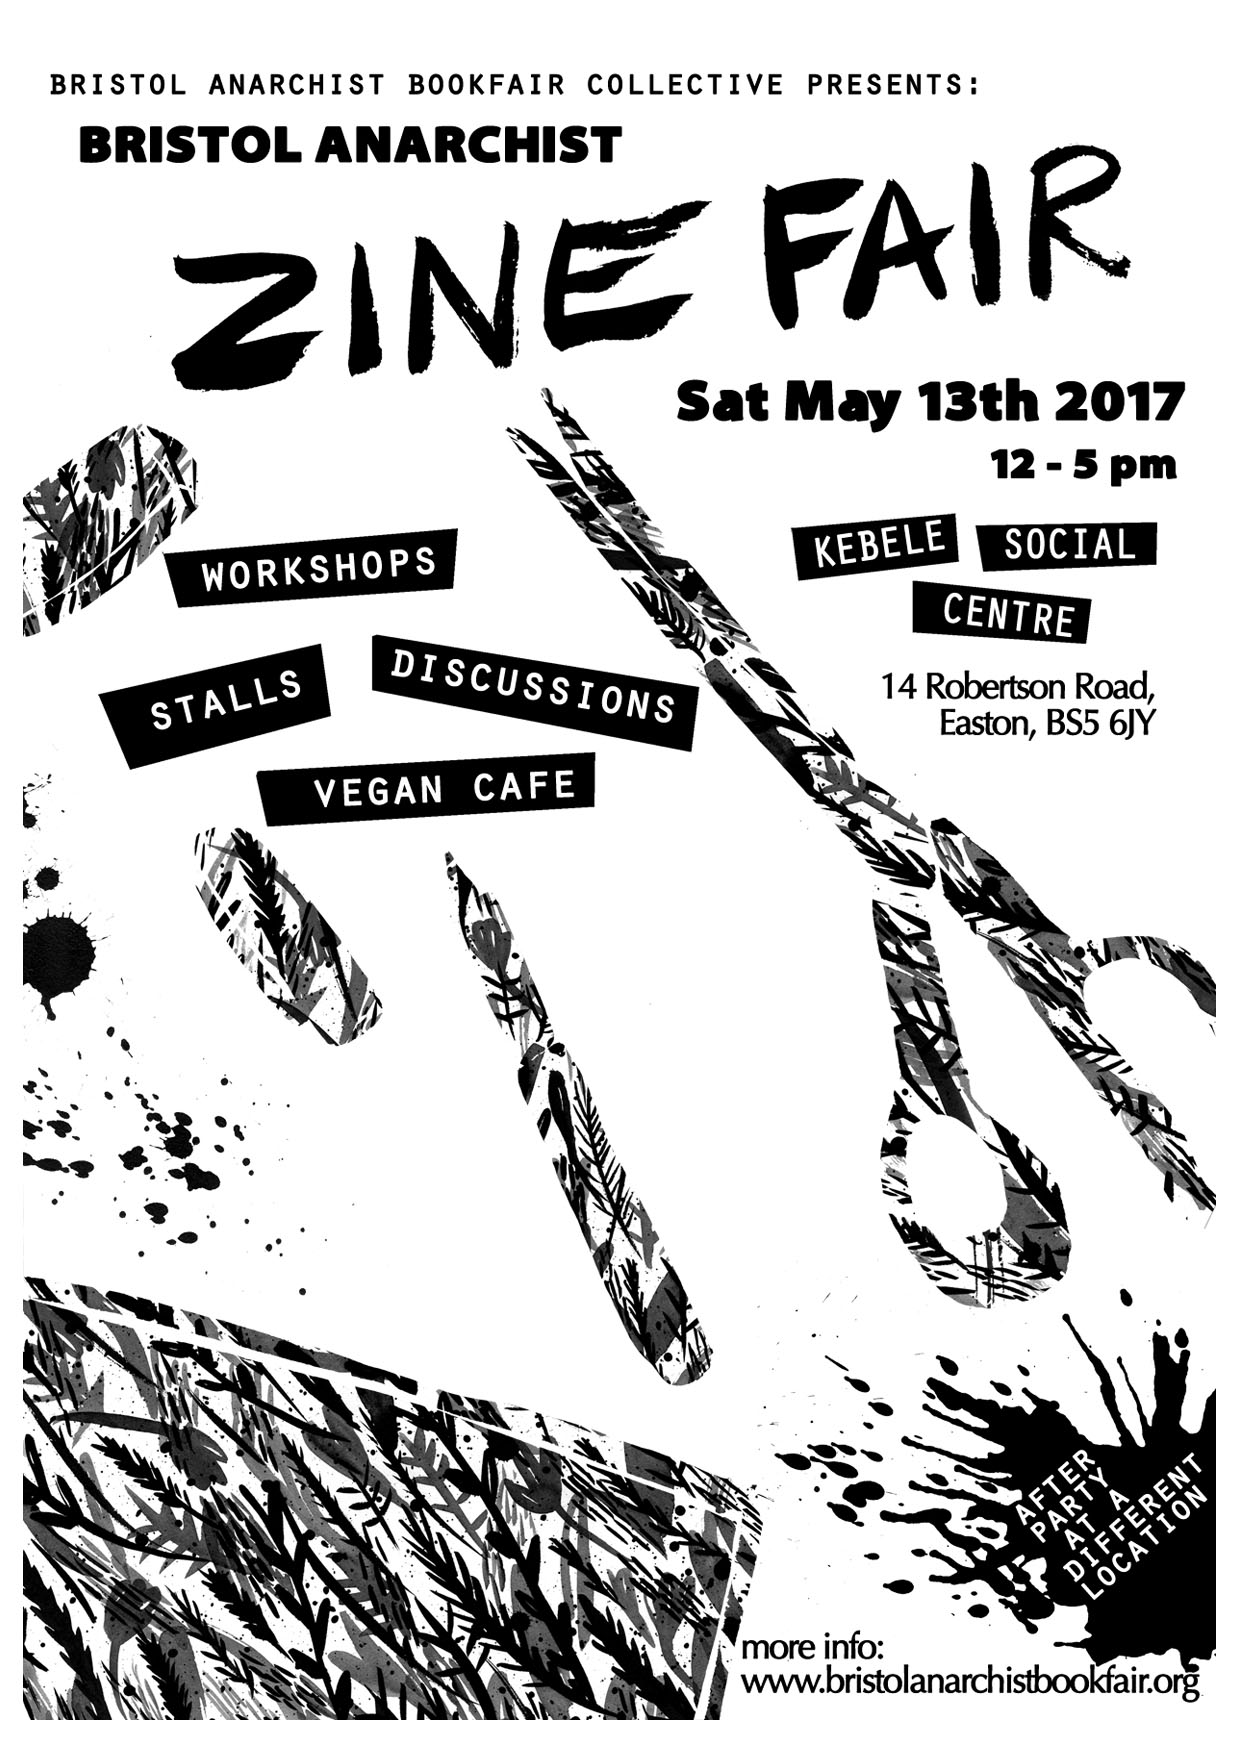 Bristol Anarchist Zine Fair